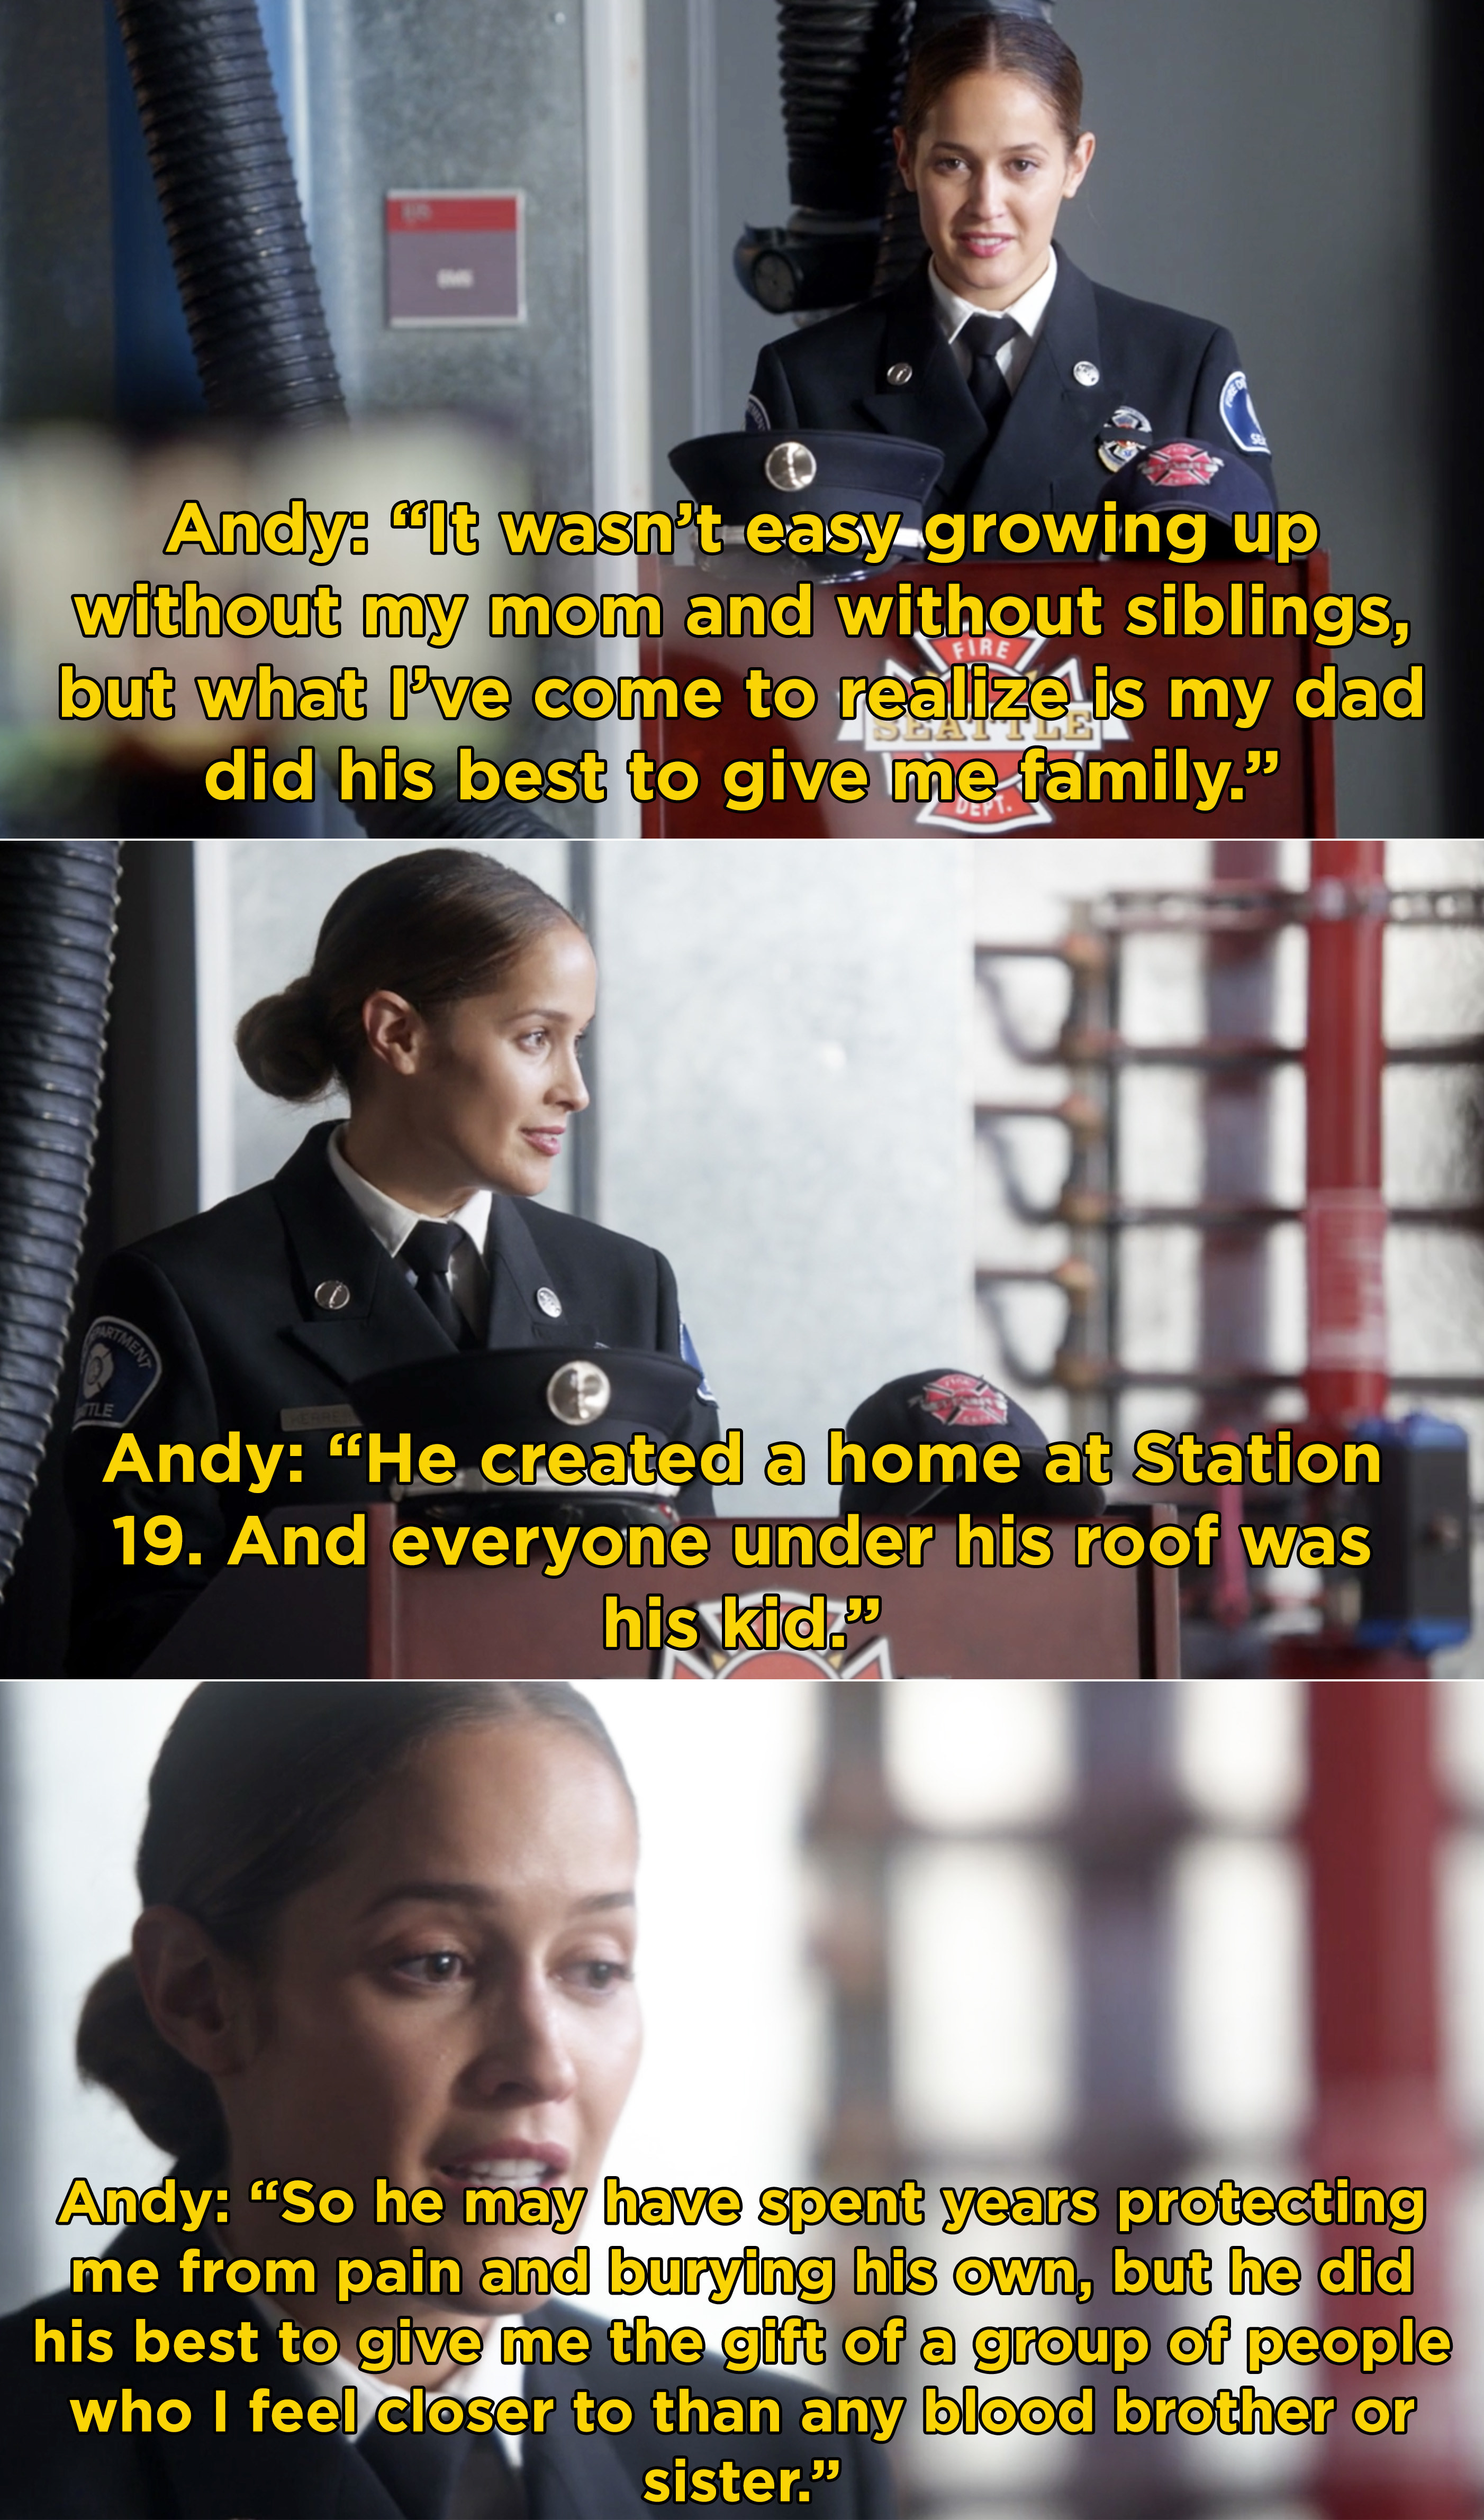 Andy saying that her dad created a home for her at Station 19 because everyone is close to her than any blood brother or sister would be